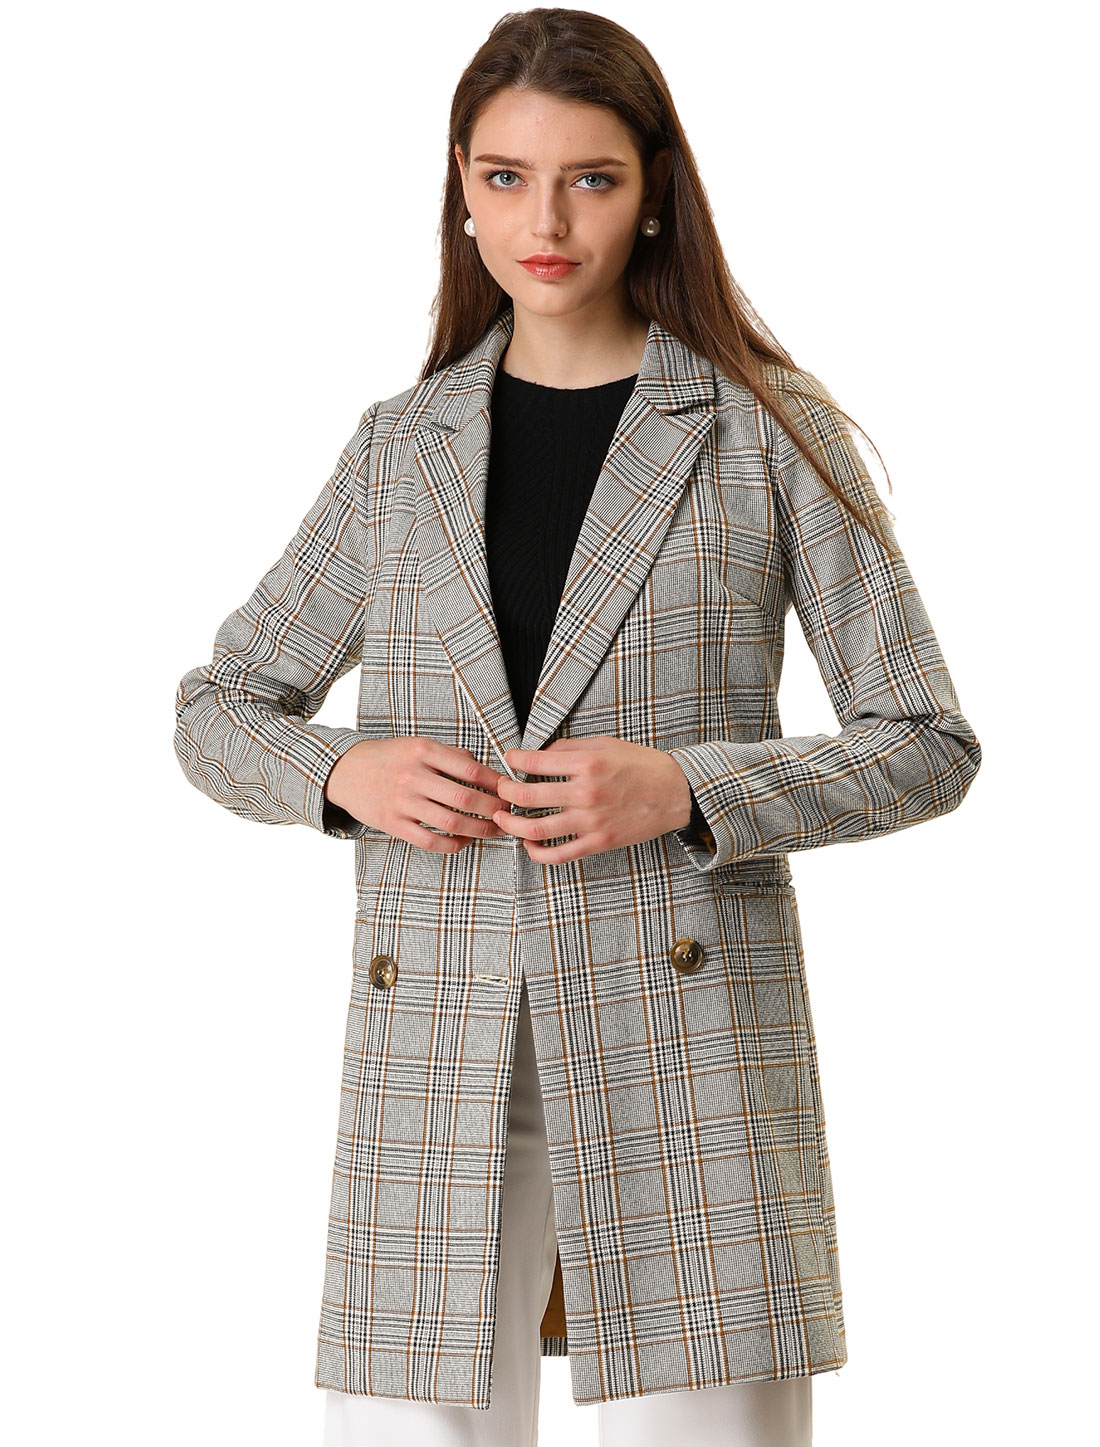 Women's Double Breasted Plaid Check Outwear Jacket Coat Gray Khaki M